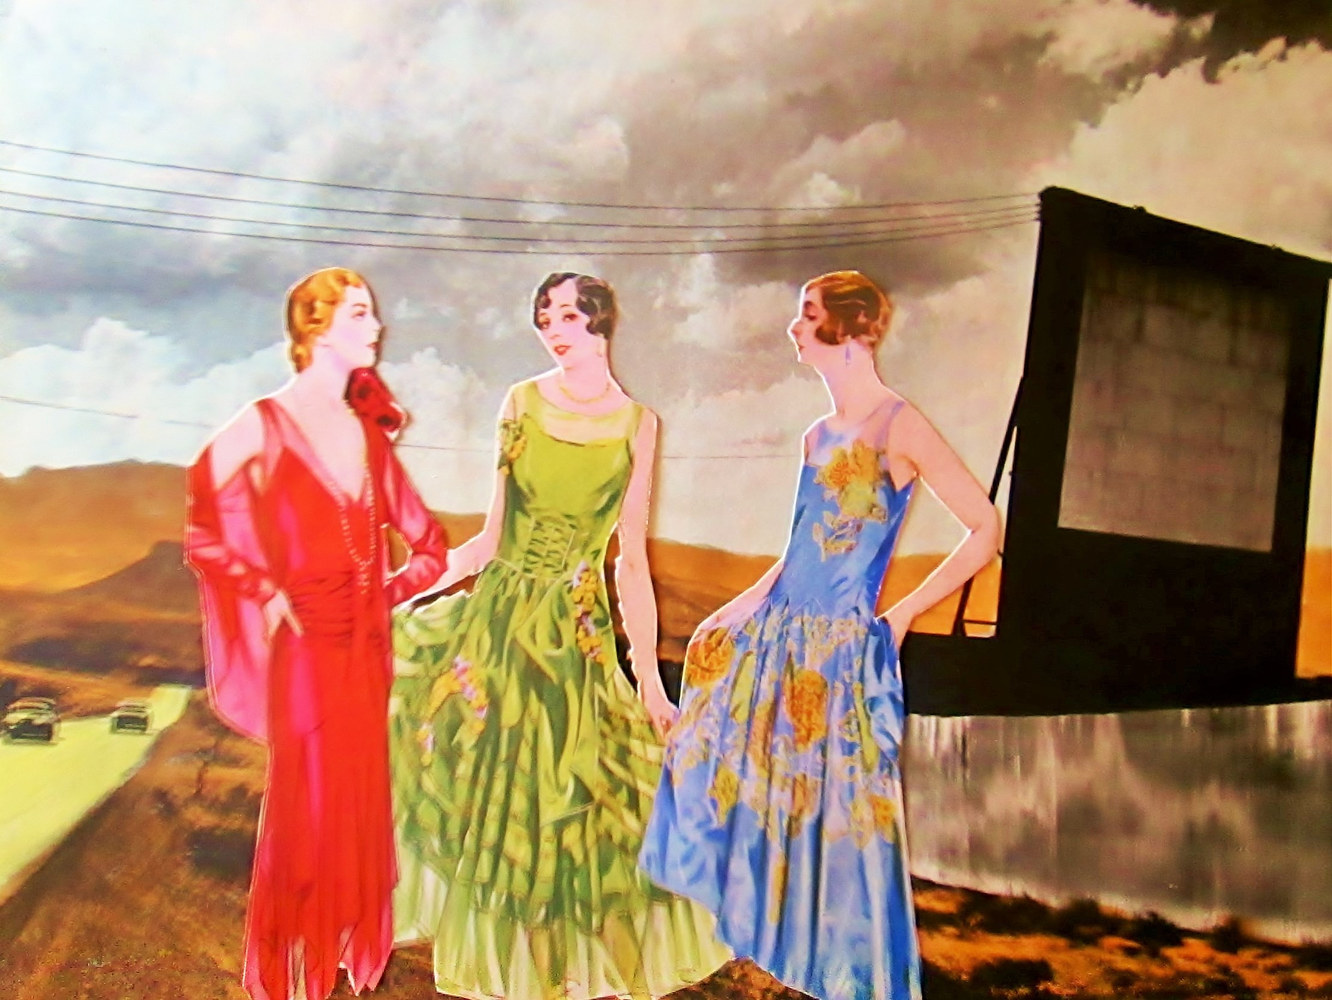 A 1930s Roadside Attraction  by Jo Ann Tunnell Muench